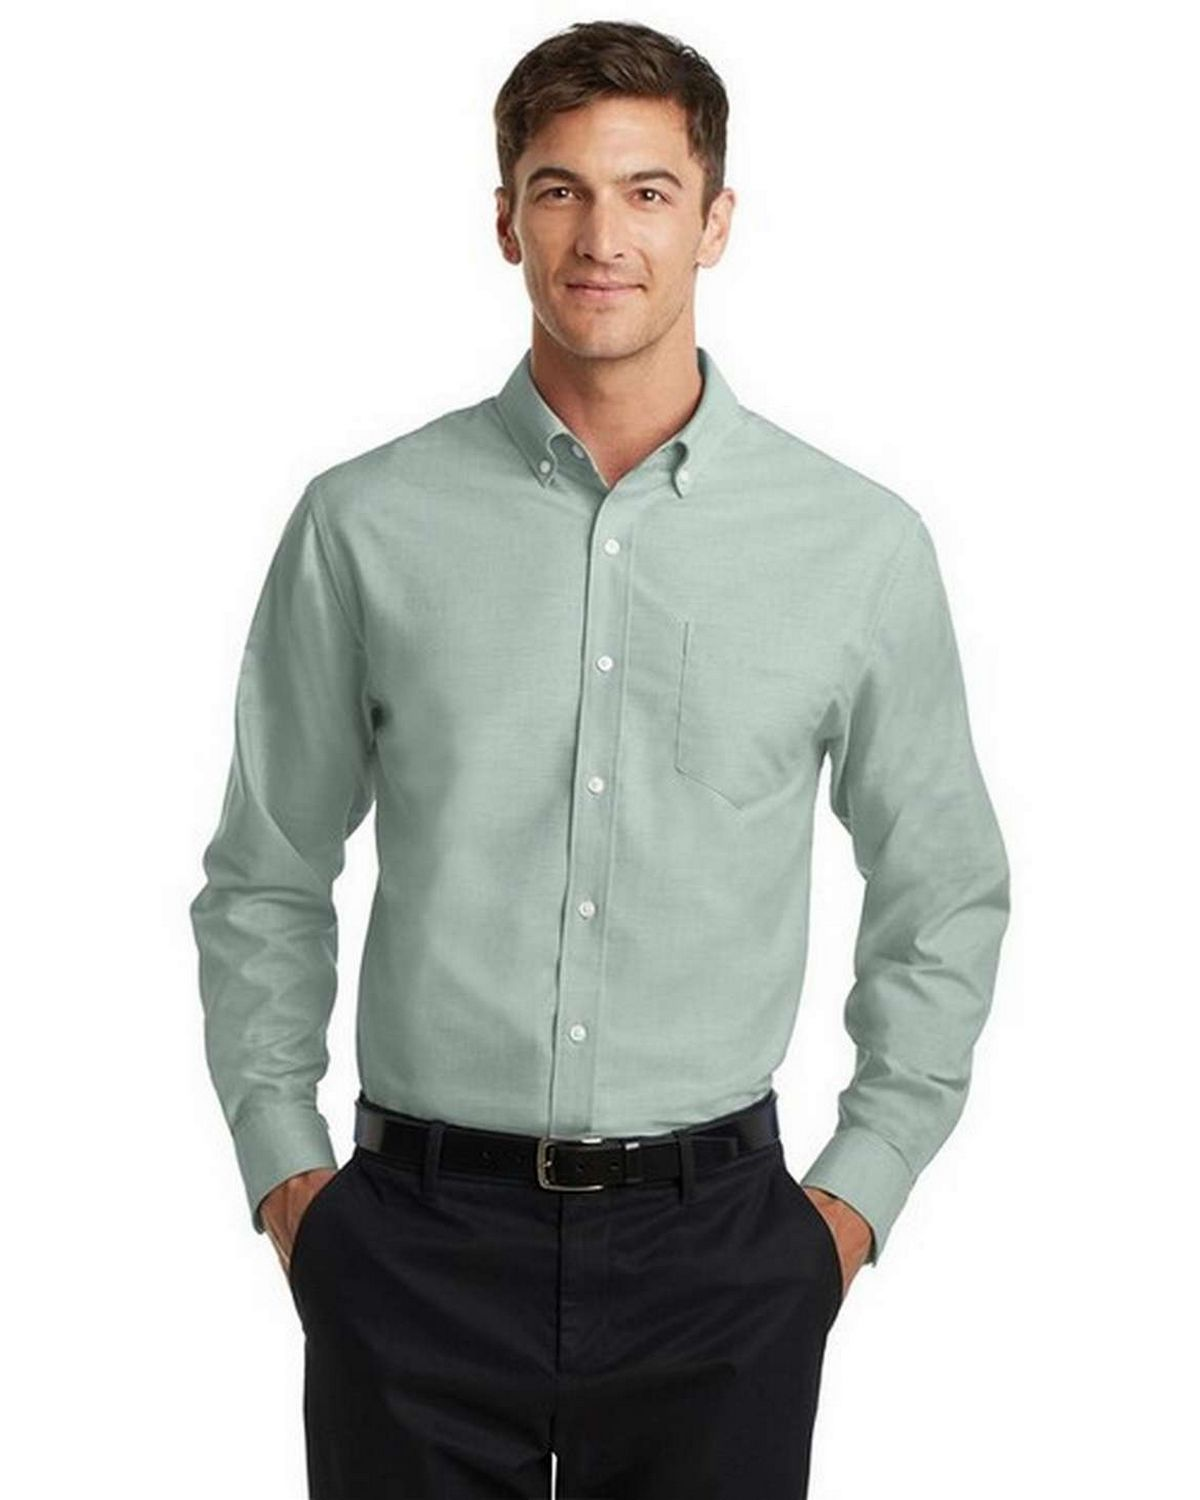 Port Authority S658 SuperPro Oxford Dress Shirt